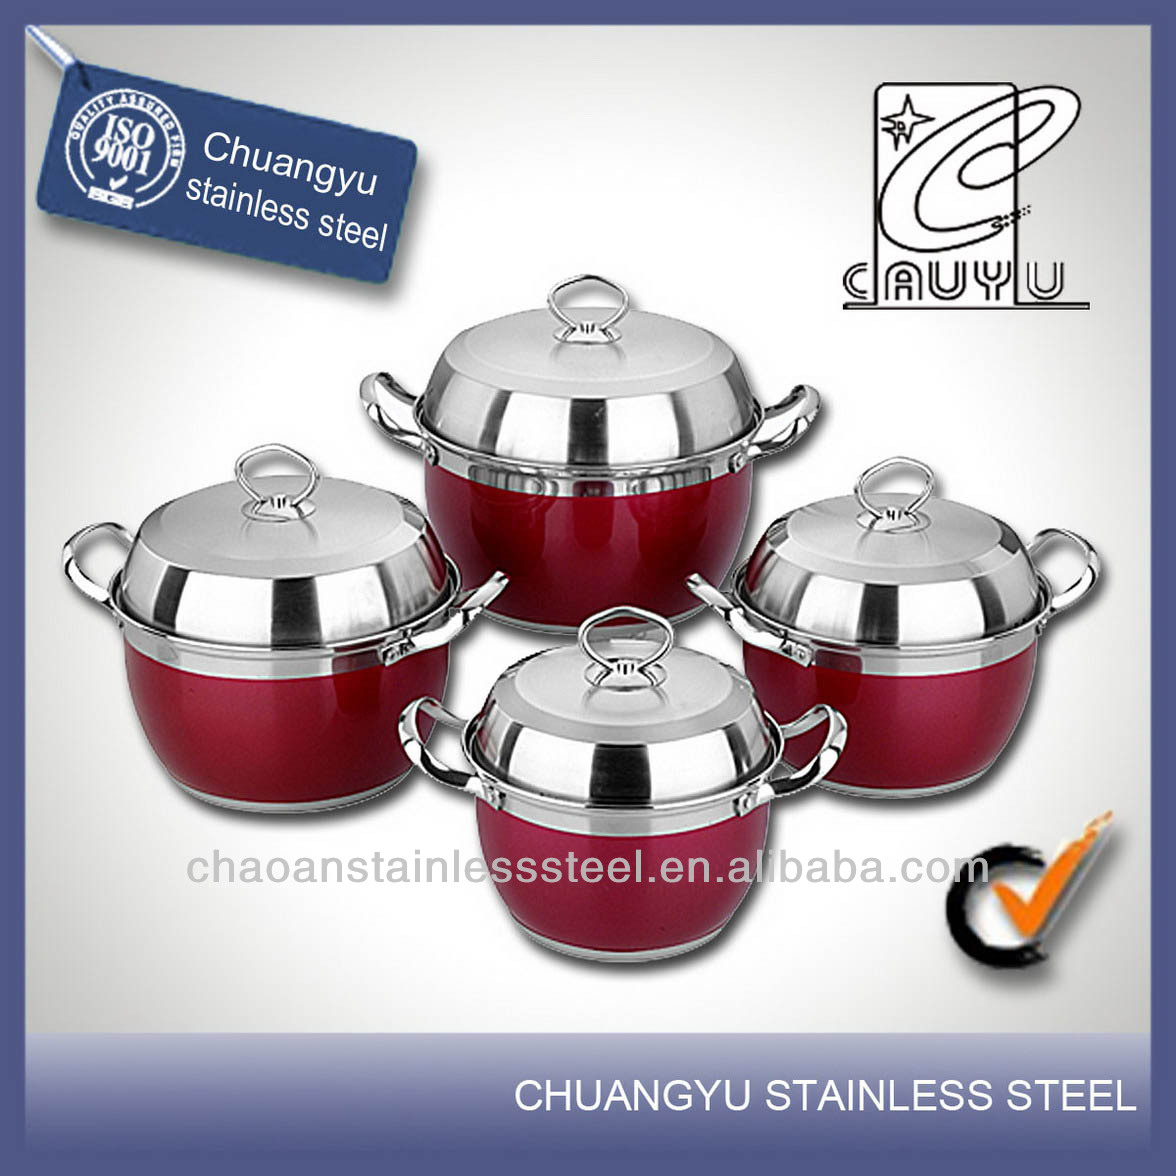 stainless steel stove lead in stainless steel cookware